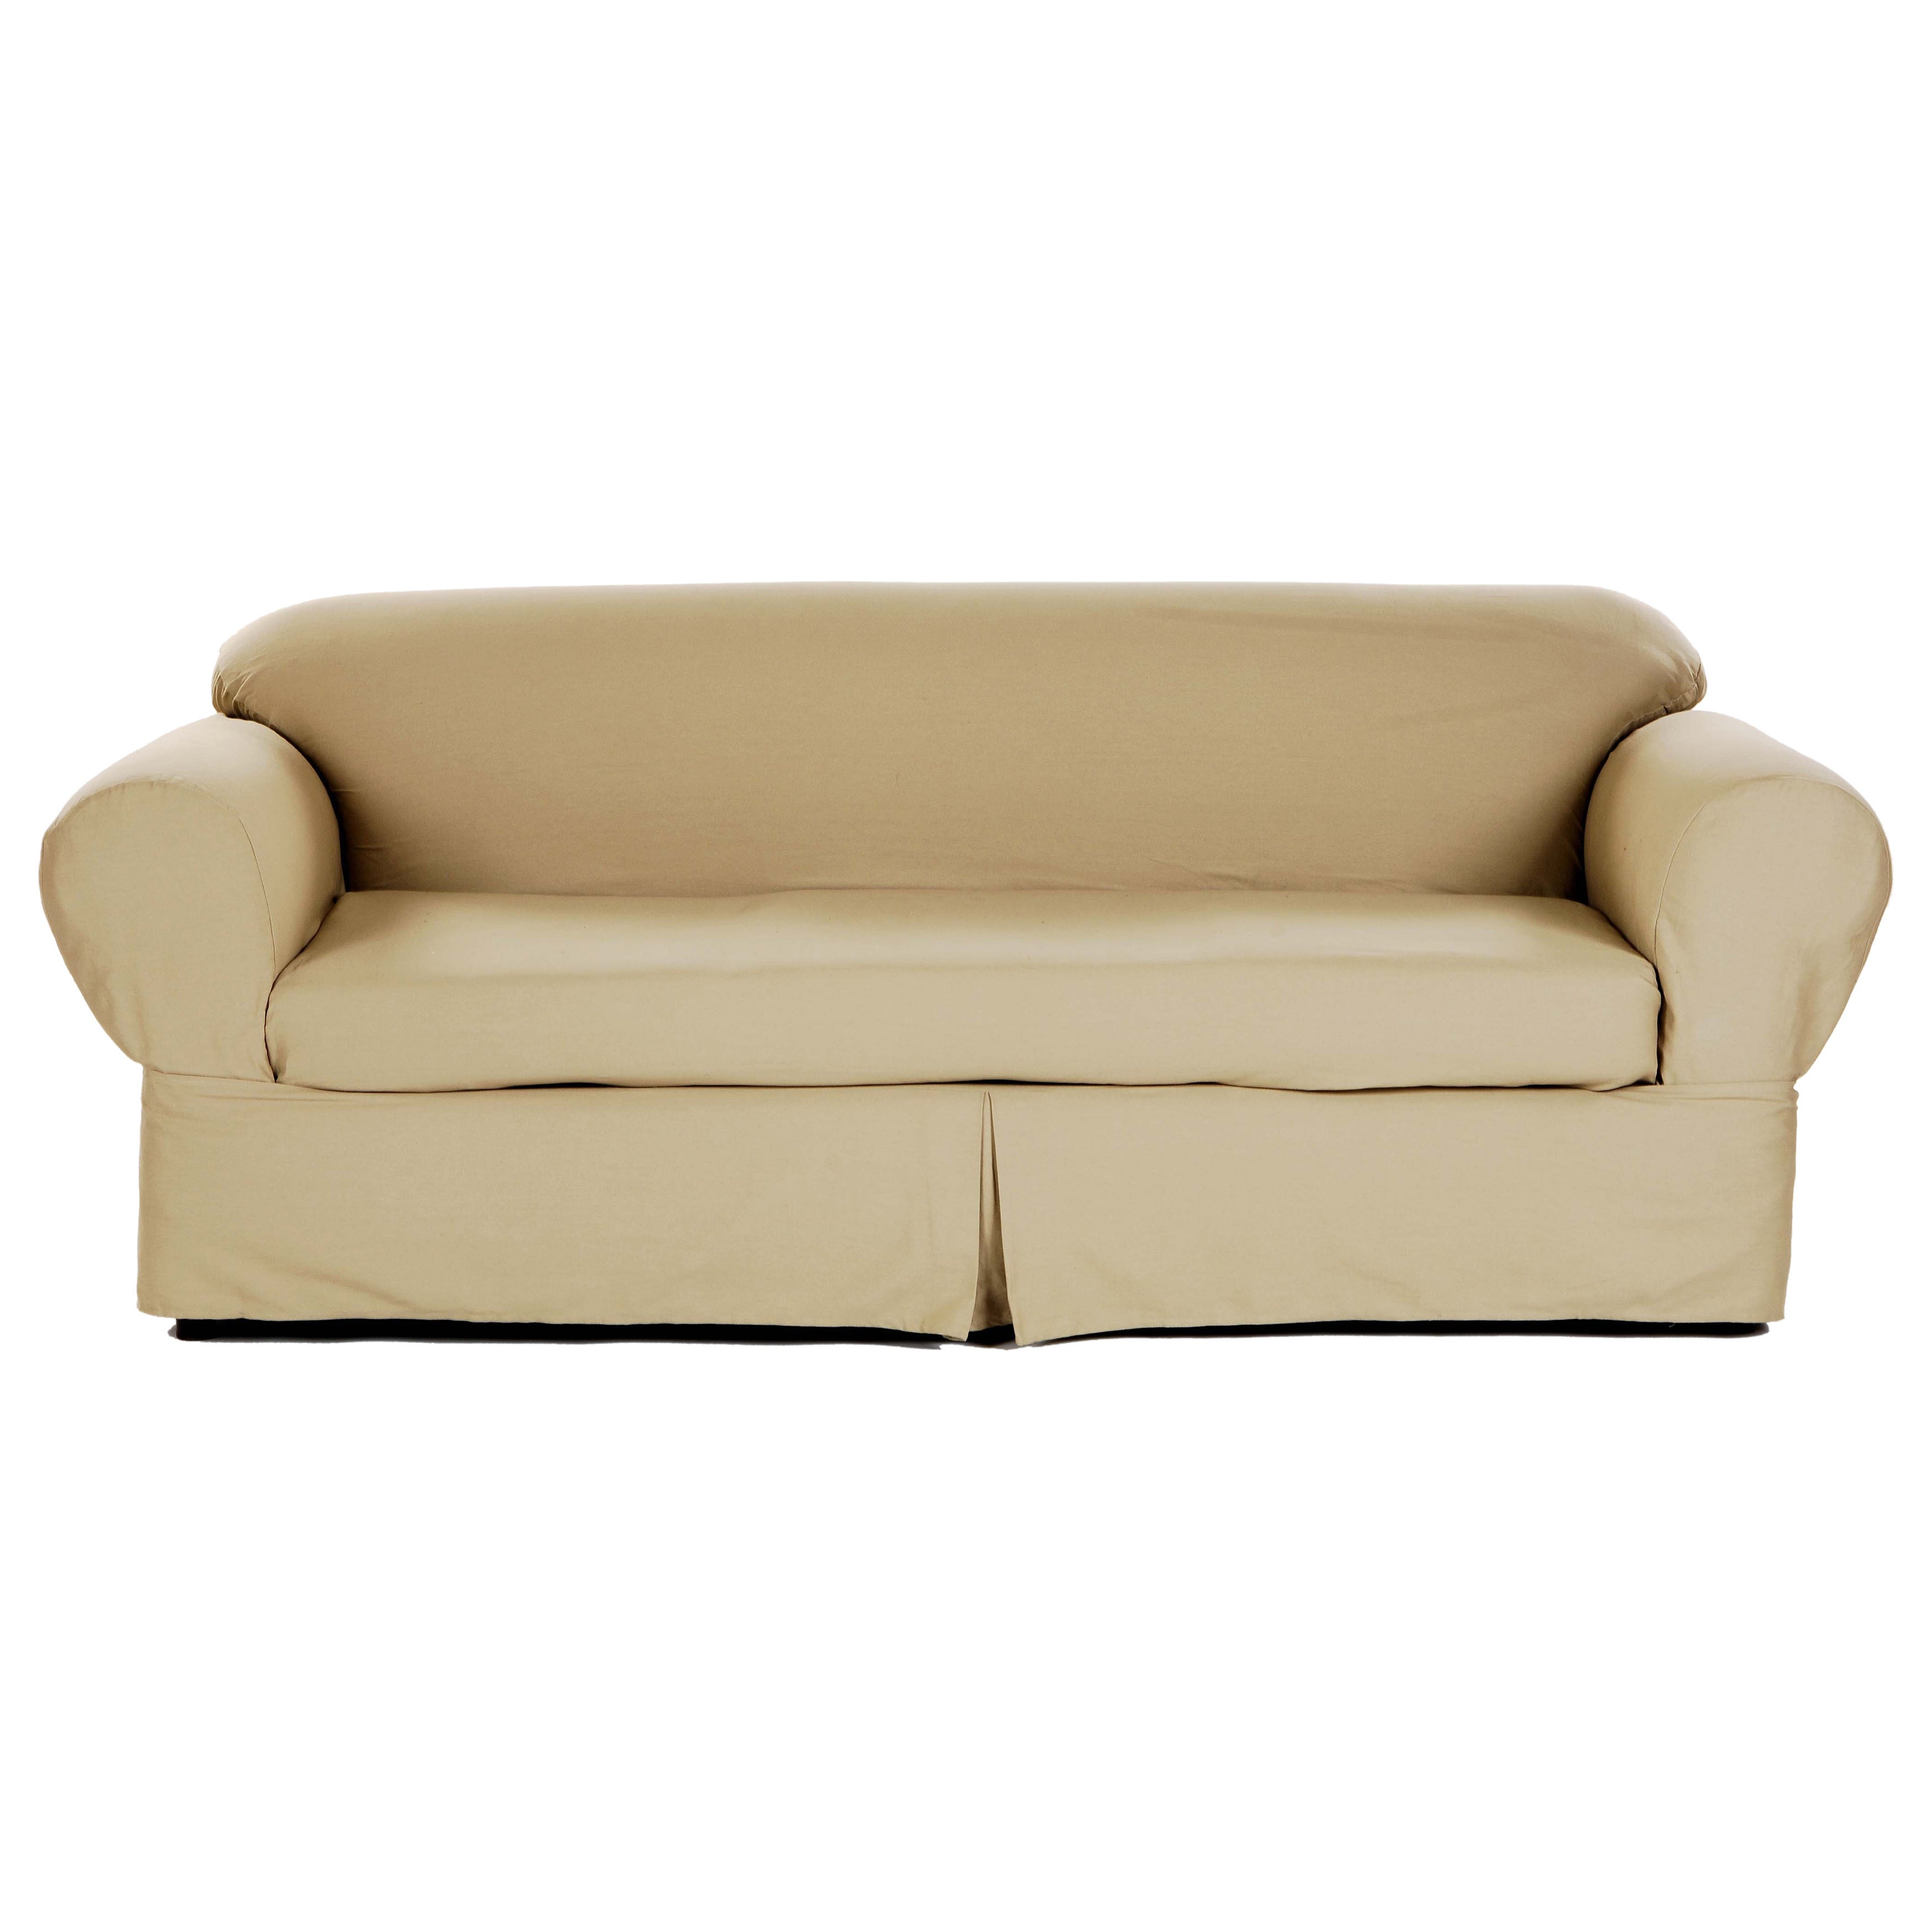 Gentil Shop Classic 2 Piece Twill Sofa Slipcover   Free Shipping Today    Overstock.com   7358756